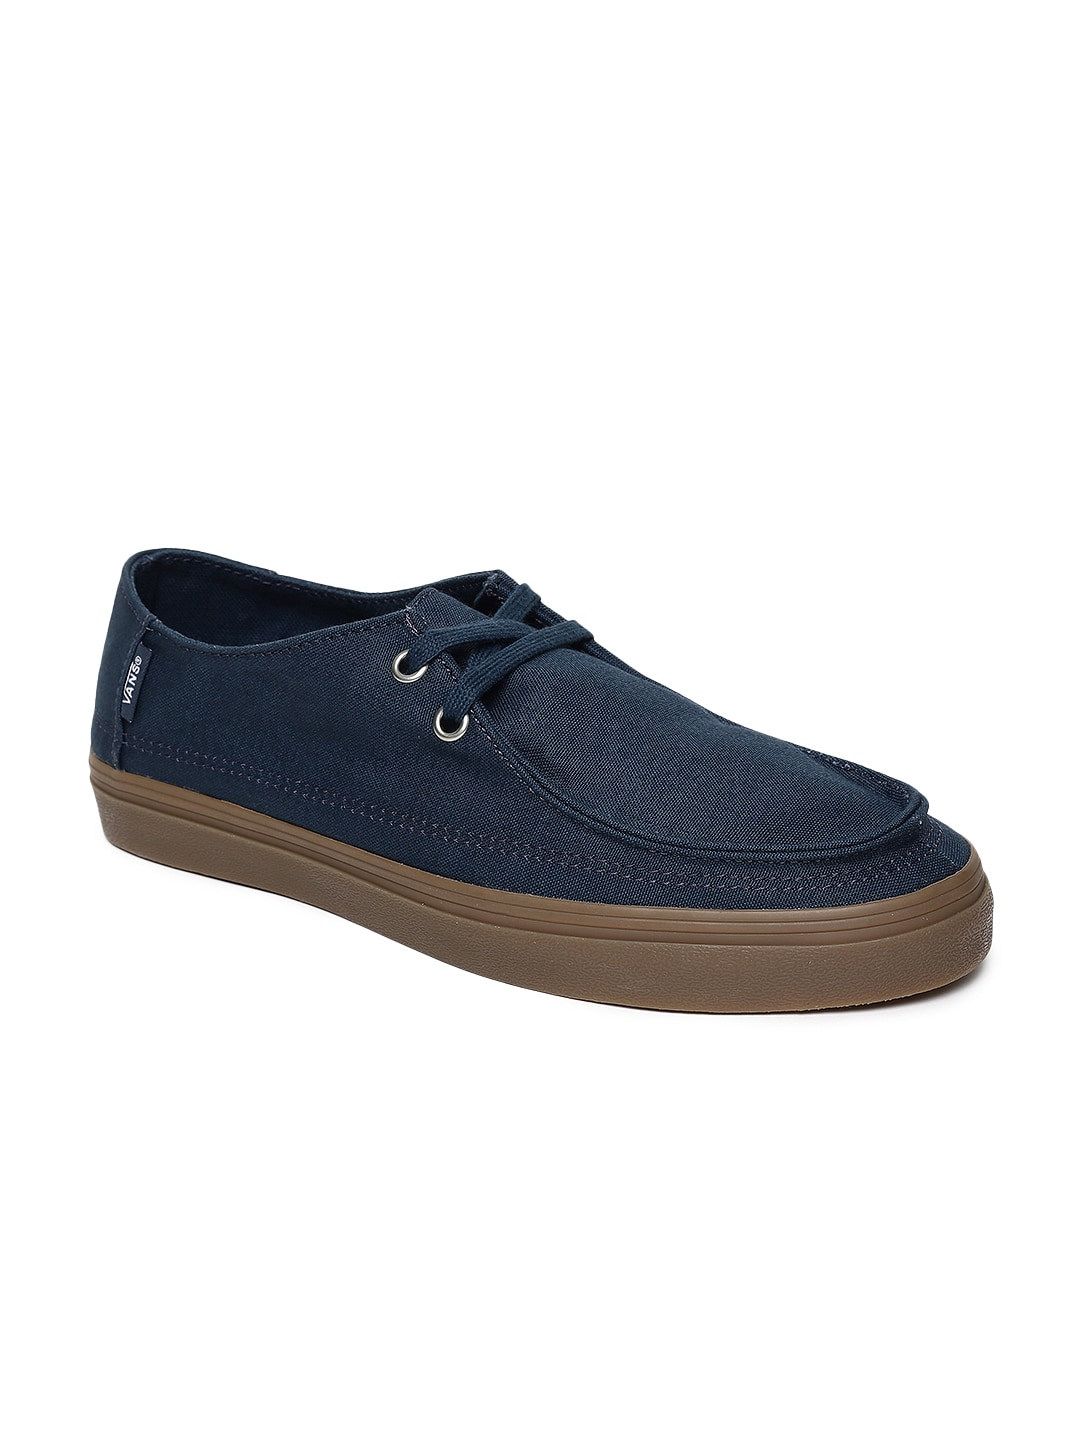 d22741e2b7a938 Vans Classic Slip On - Buy Vans Classic Slip On online in India